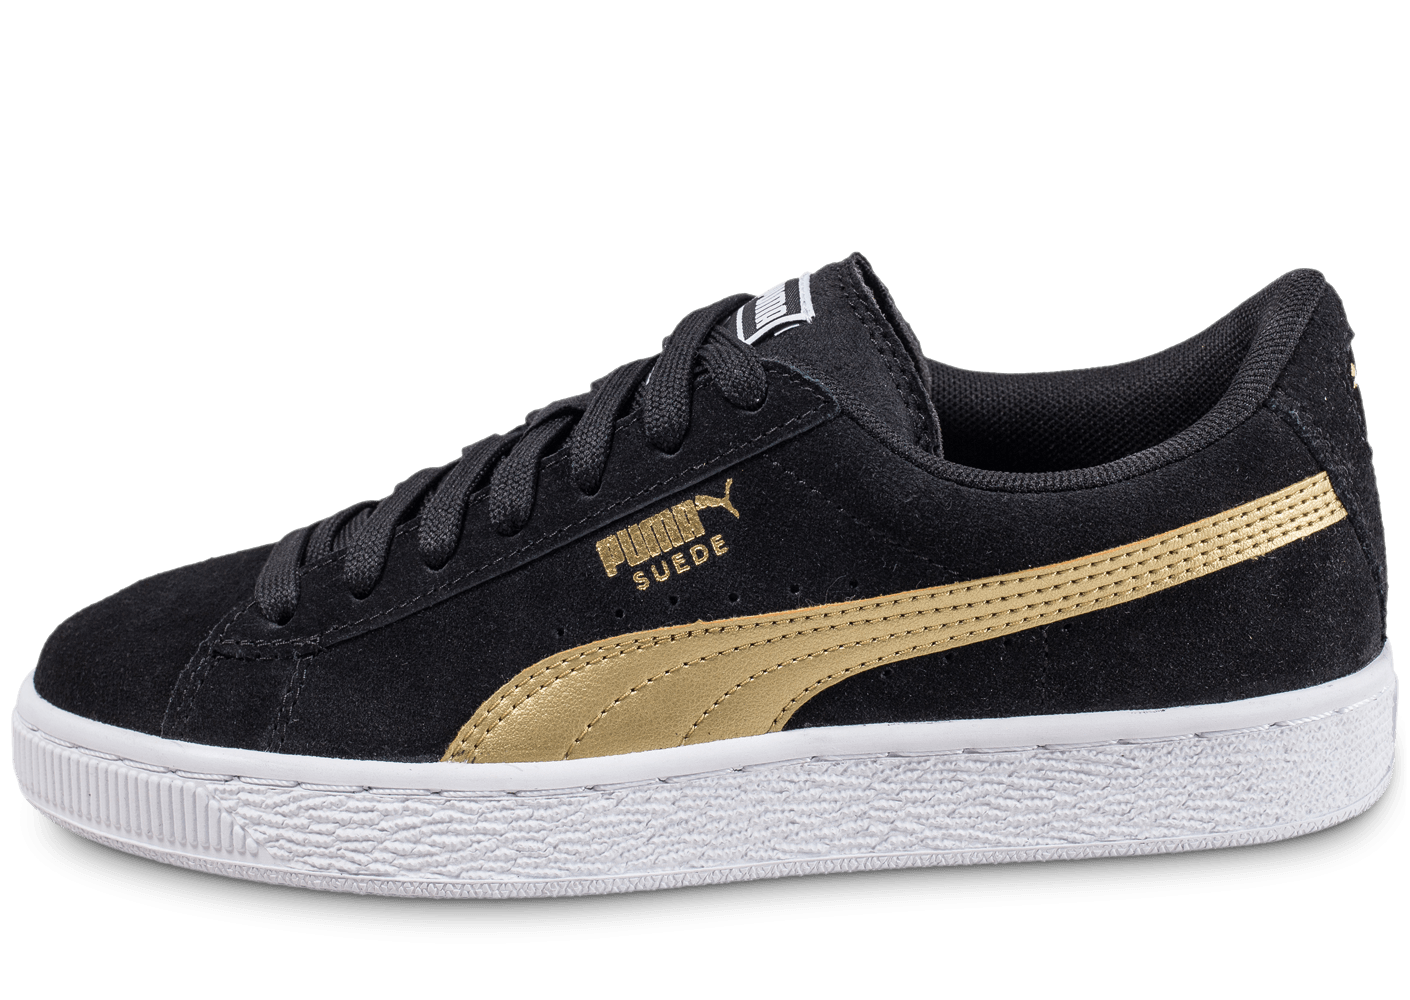 puma puma suede junior noire et or chaussures black friday chausport. Black Bedroom Furniture Sets. Home Design Ideas